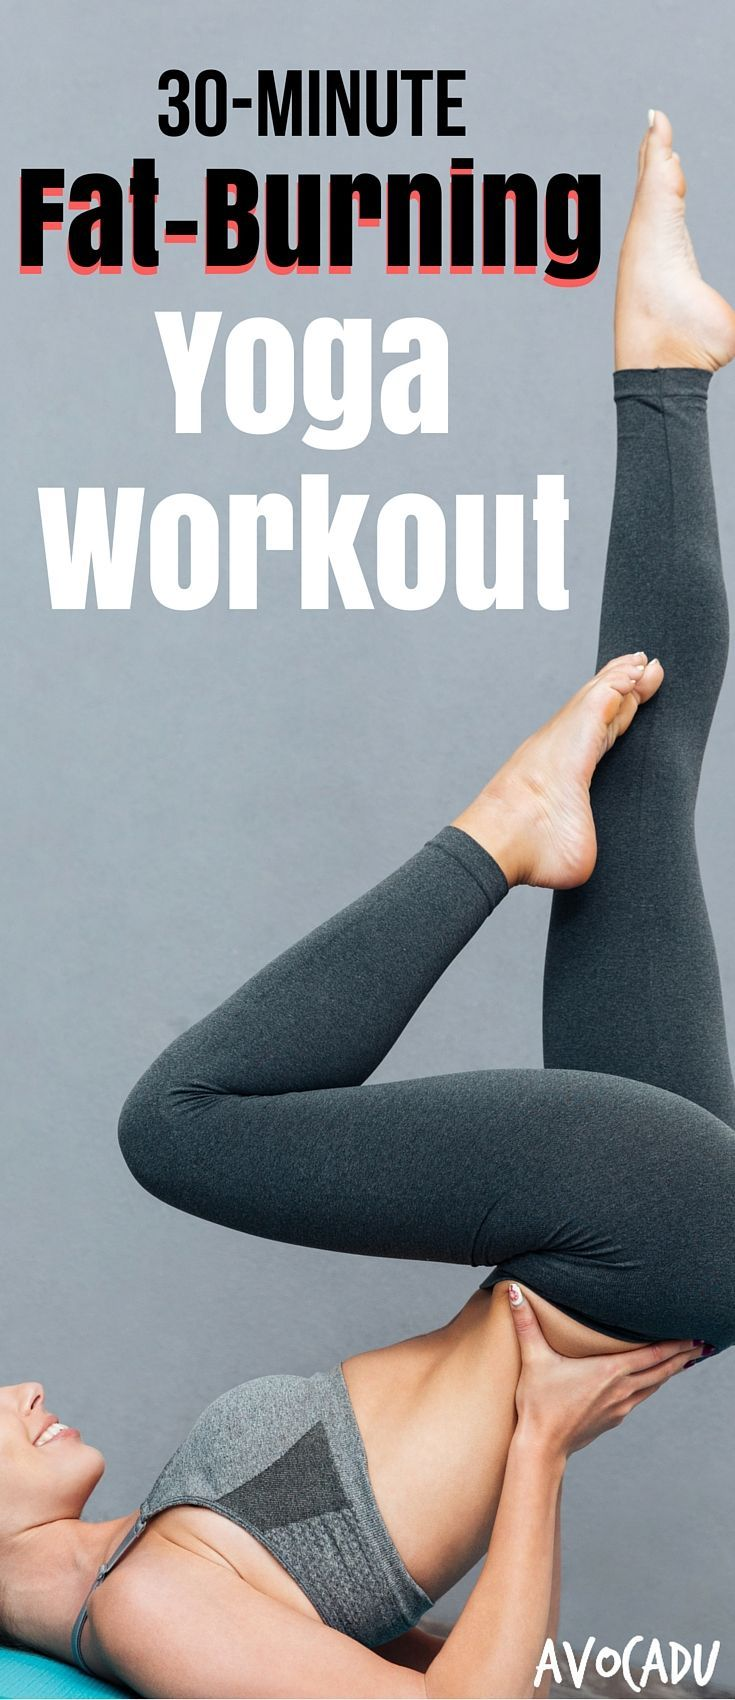 This 30-minute fat burning yoga workout will help you lose weight, get more flexible, strengthen your muscles, and help relieve tension and pains! http://avocadu.com/fat-burning-yoga-workout-for-begin (Fitness Motivation Bikini)